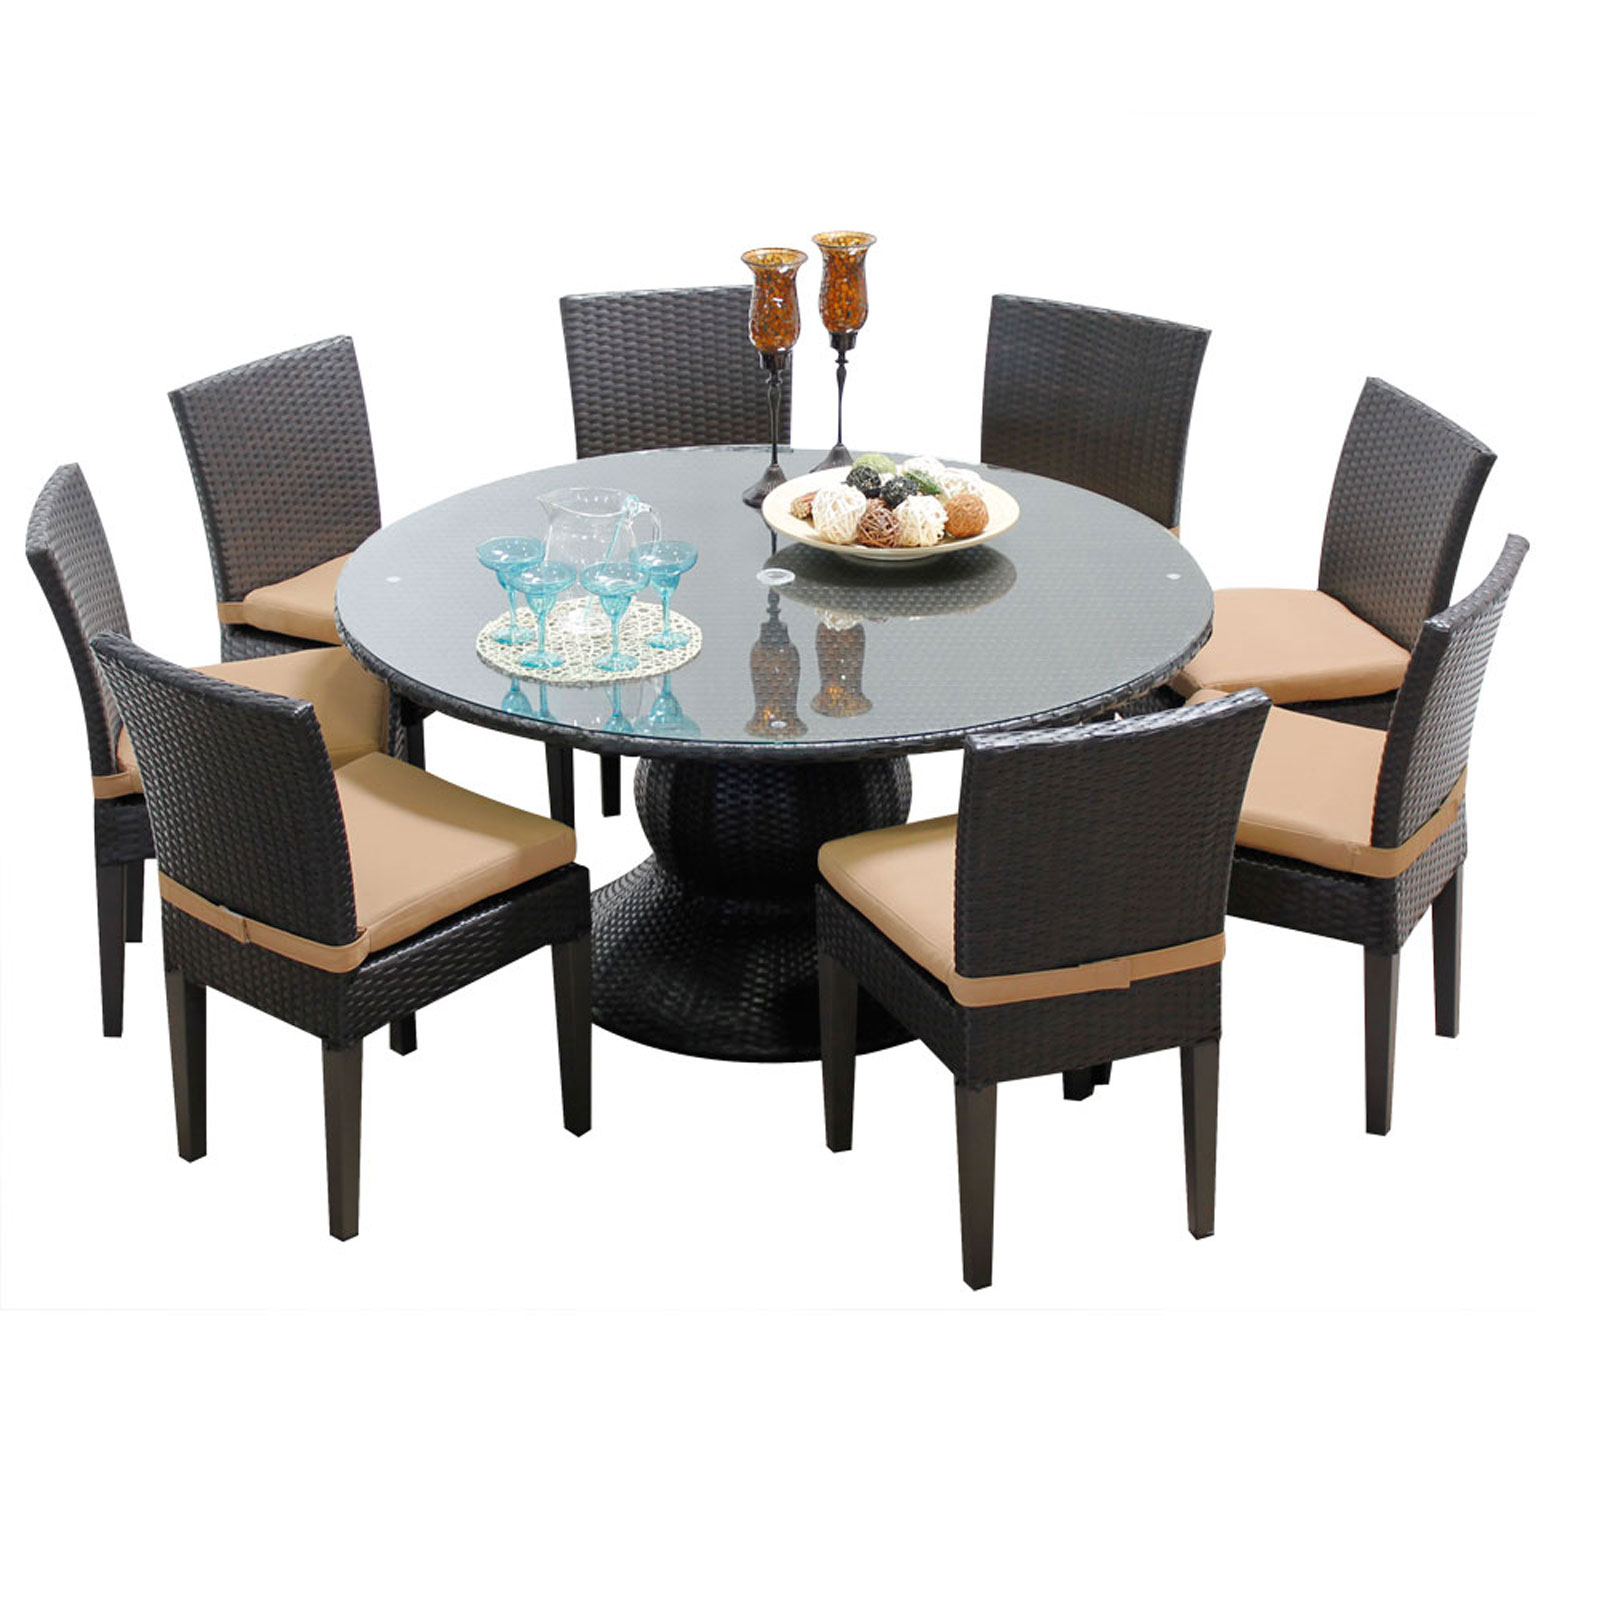 Dining Table 8 Chairs Pluto 60 Inch Outdoor Patio Dining Table With 8 Chairs